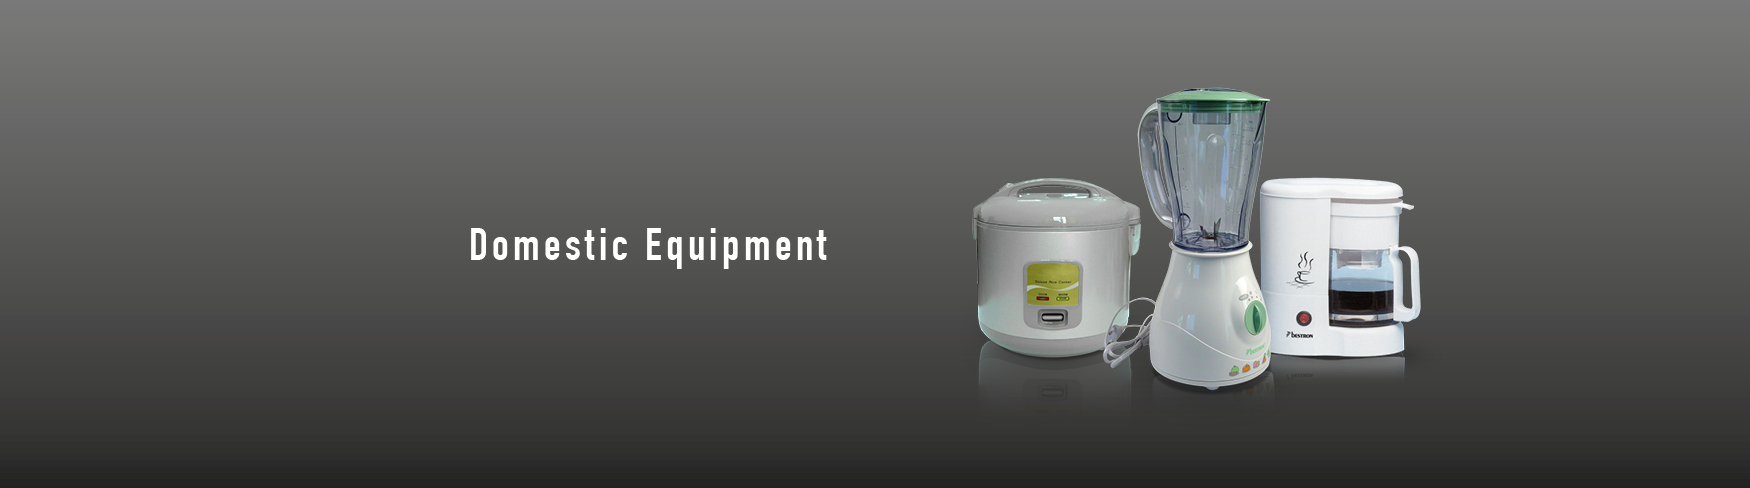 Domestic Equipment